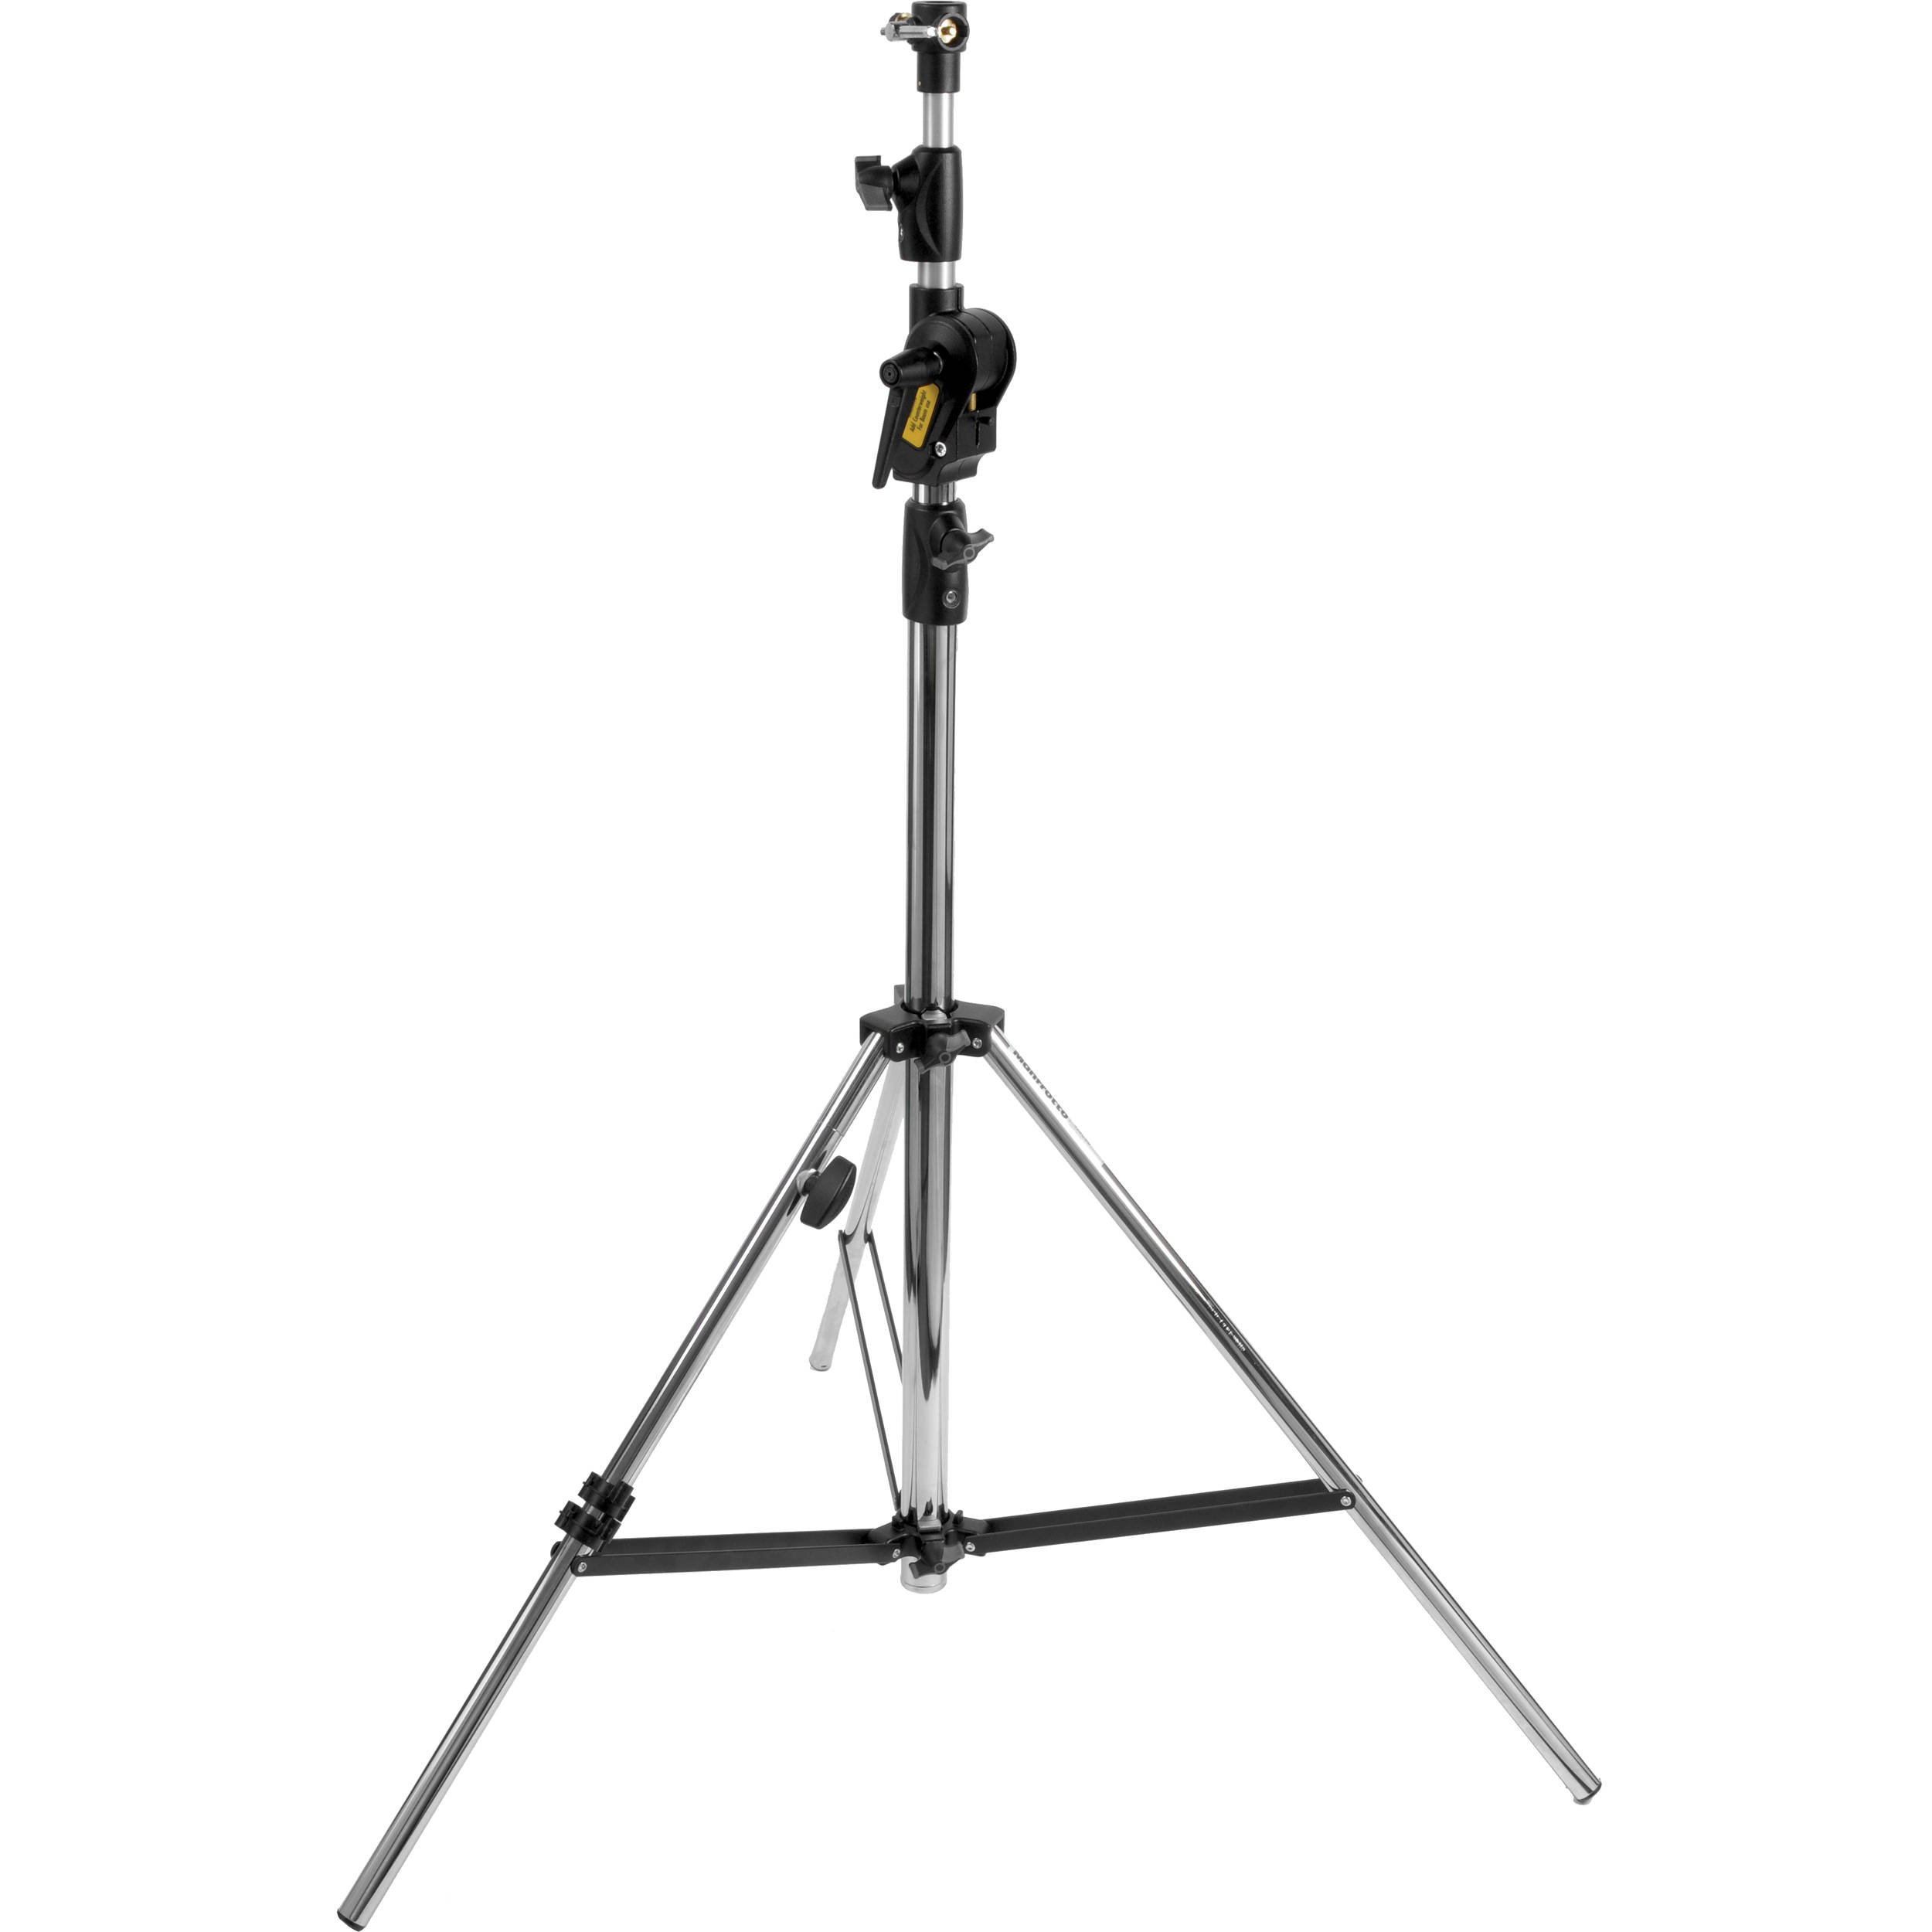 Manfrotto 420CSU Convertible Boom Stand with Sand Bag (4m)